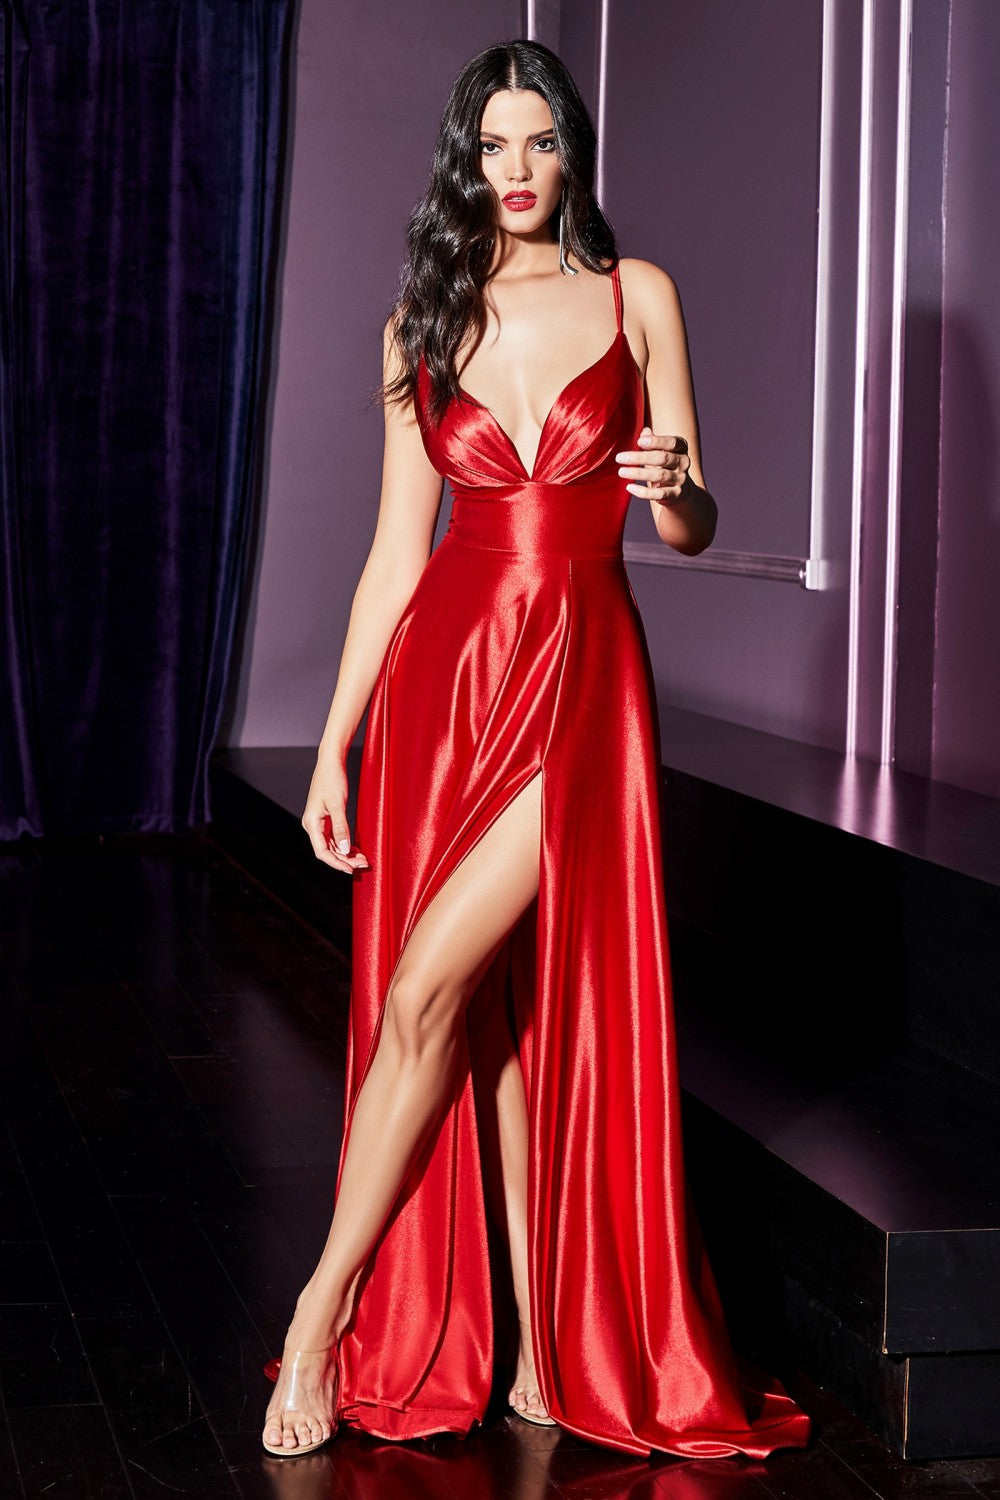 Darla Bridesmaid Satin Gown with Front Leg Slit in Red  C903KR-Red